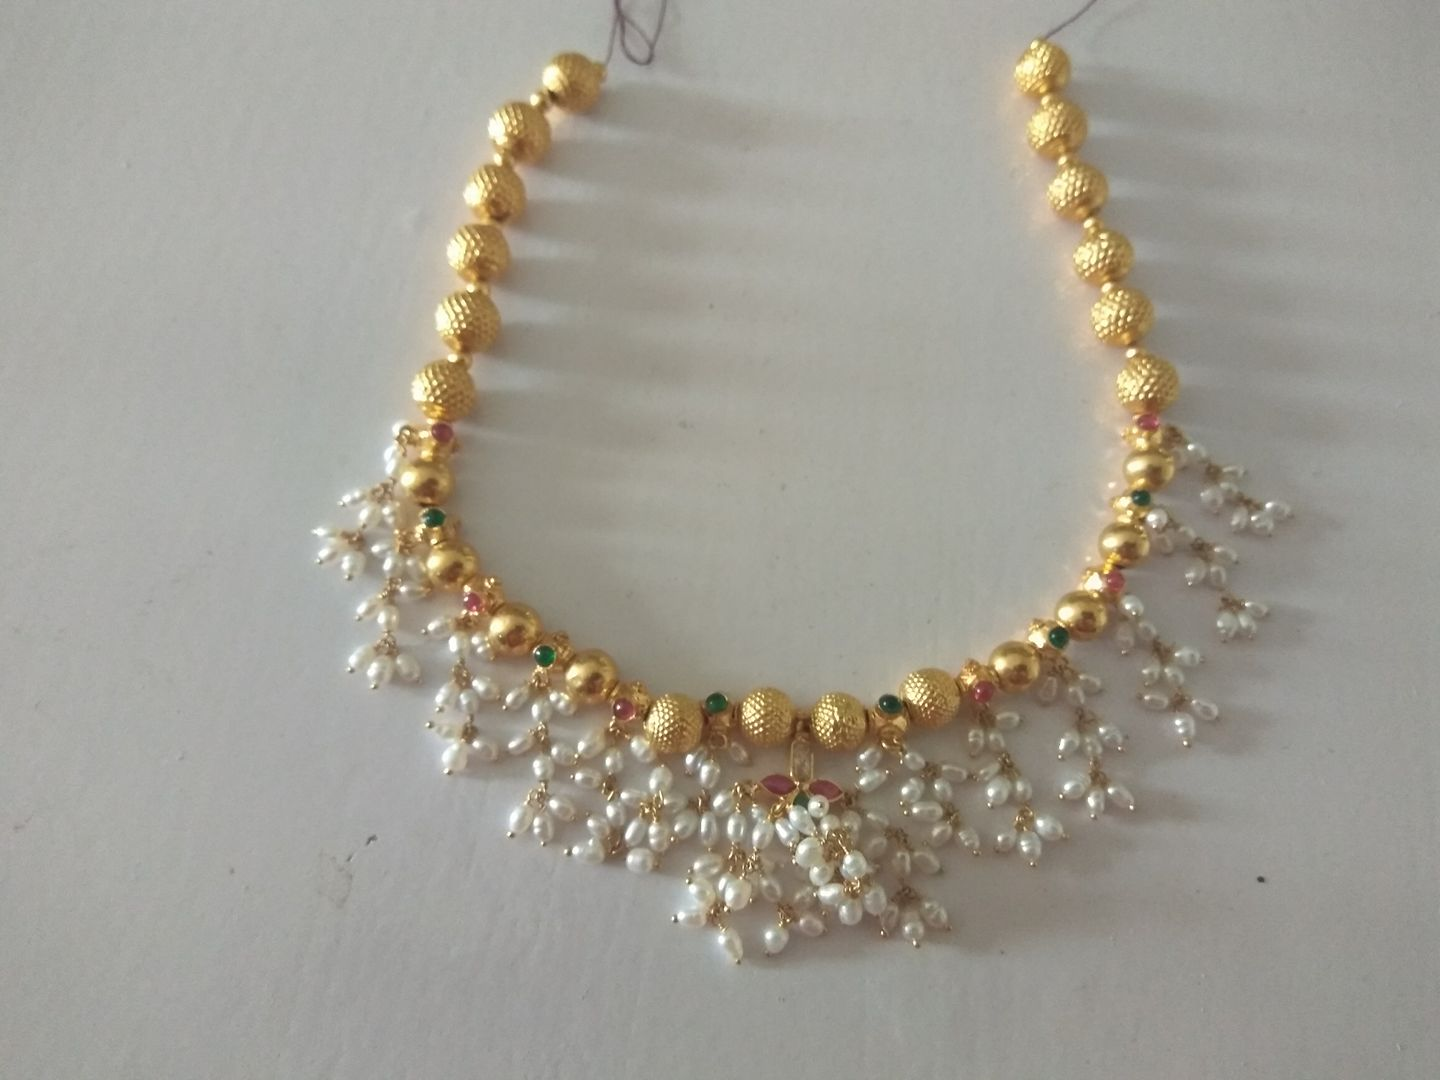 buy jewellery malabar andaaaaaarpf diamonds light online gold weight women necklace ethnix for